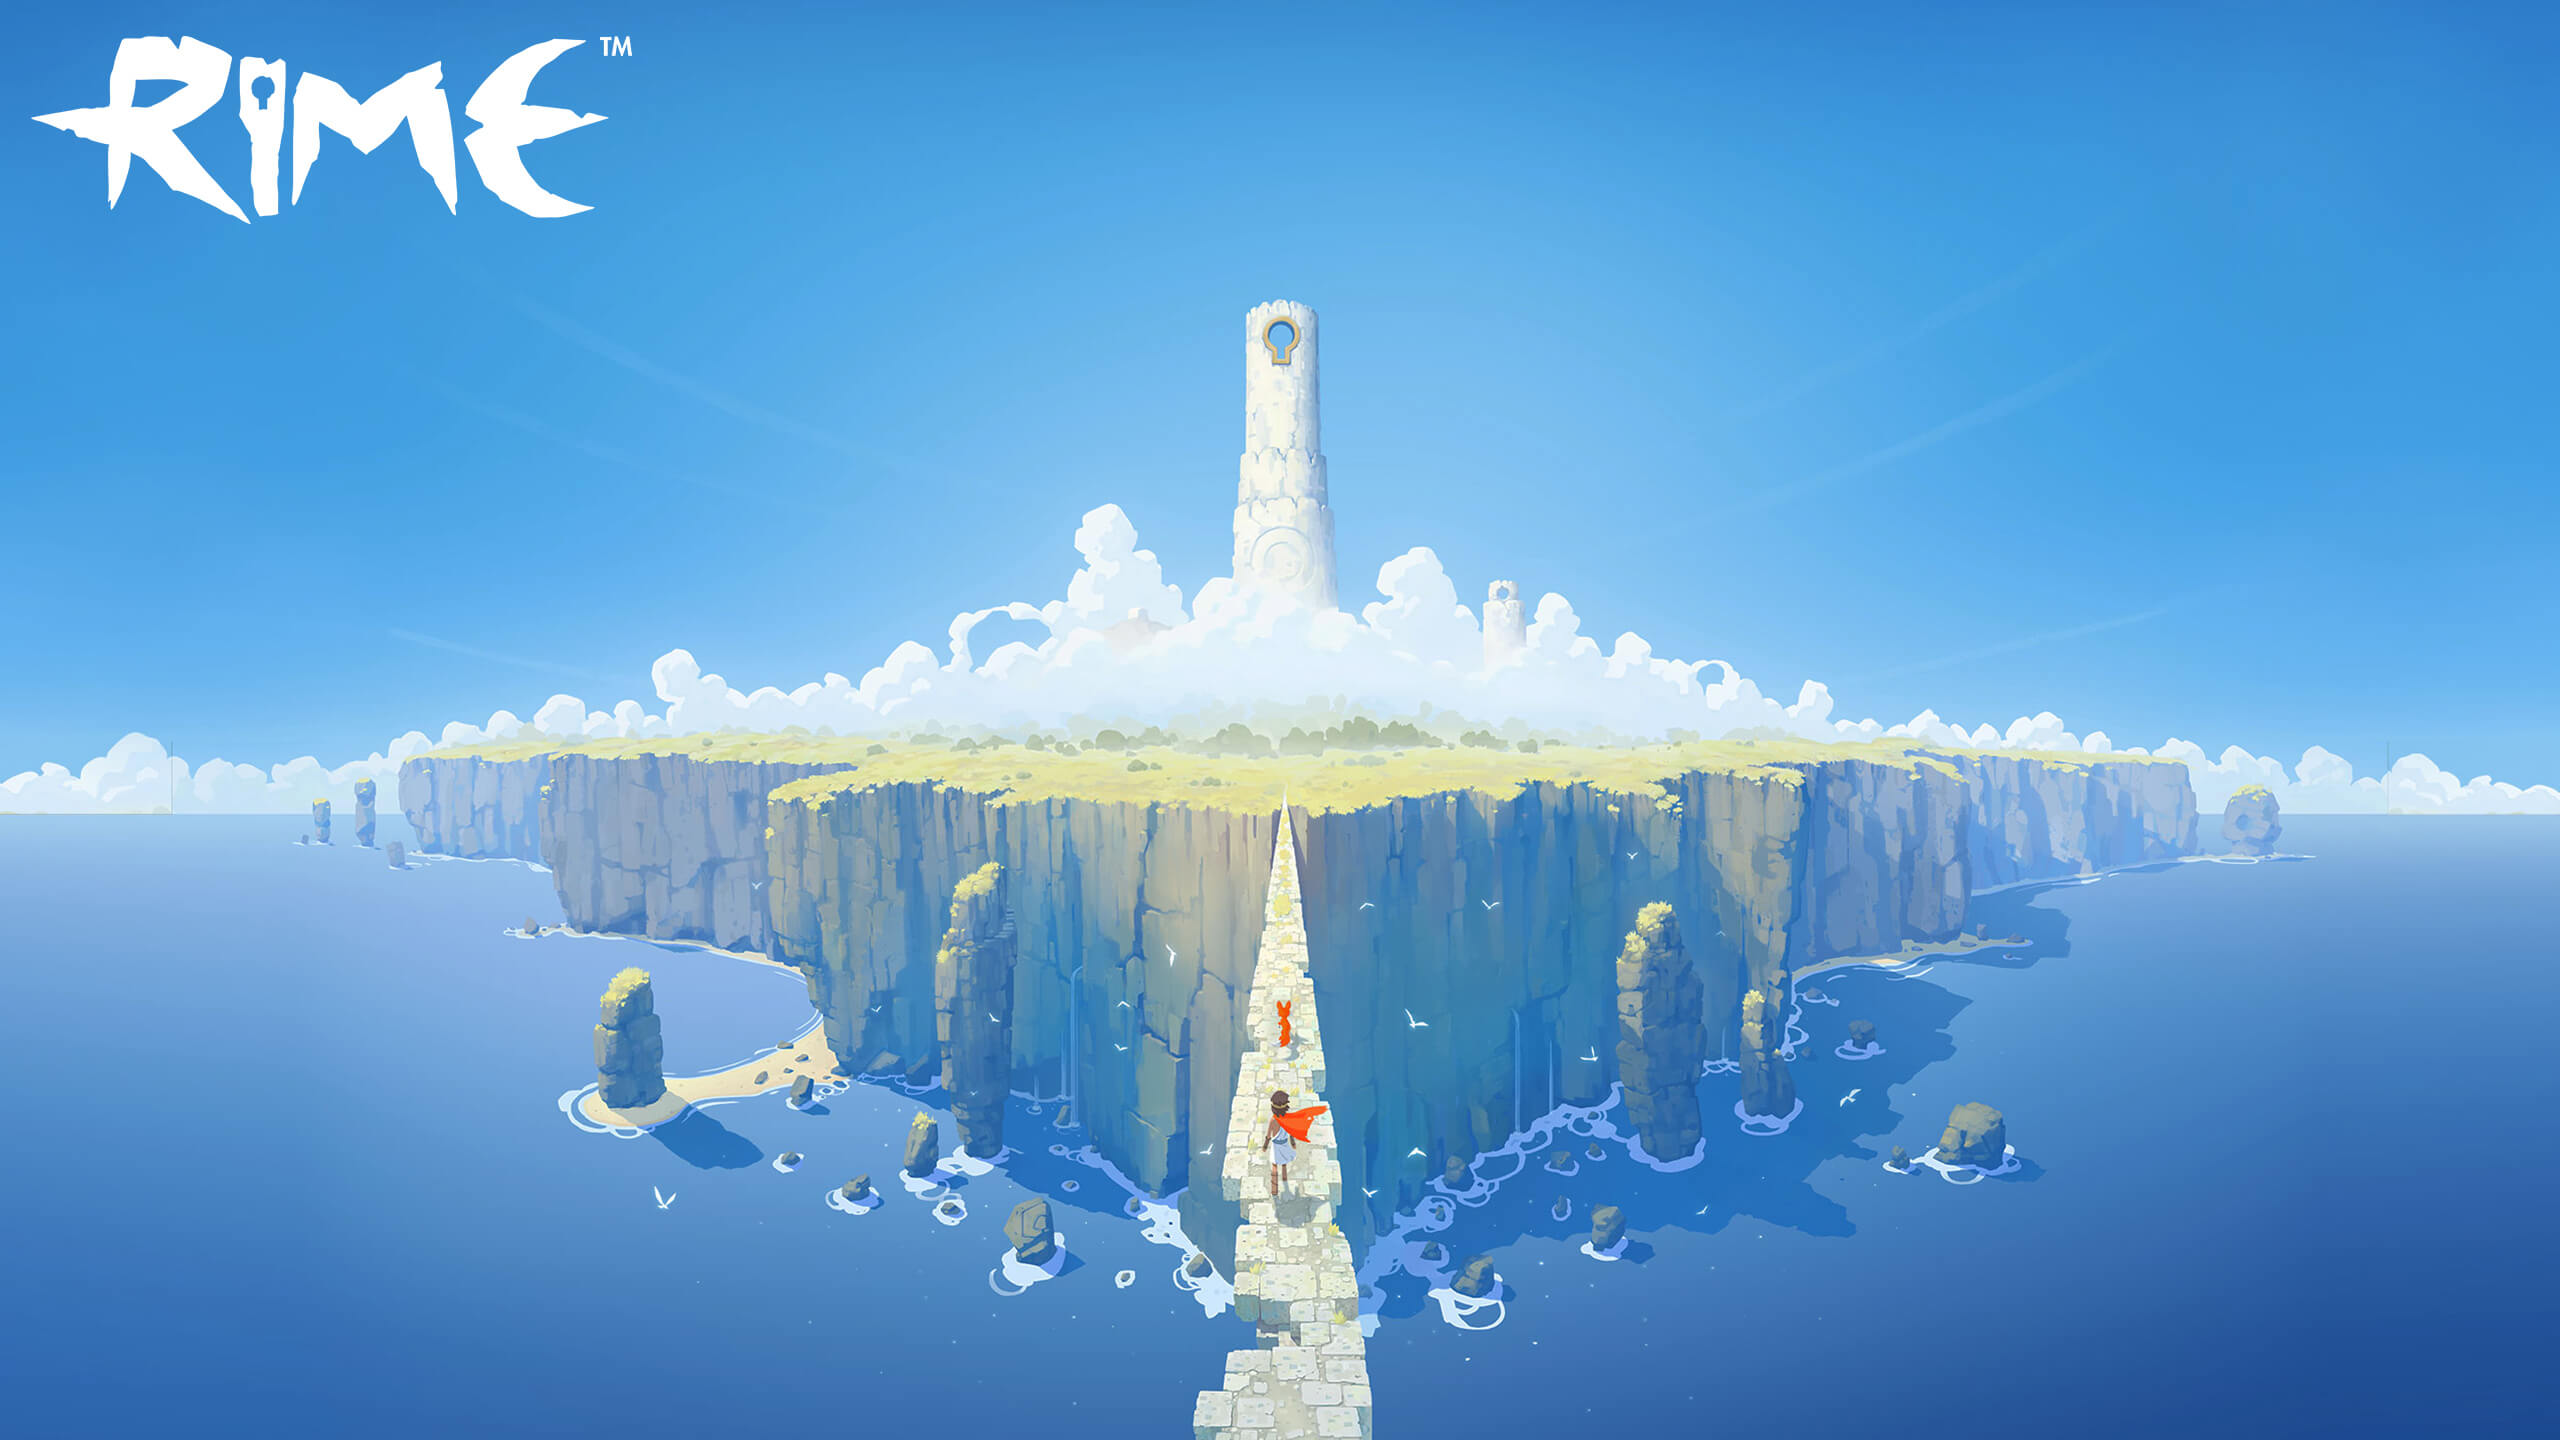 Find yourself enchanted by the vibrant, rugged world of RiME, available for FREE until May 30th (10:59 AM EDT)!